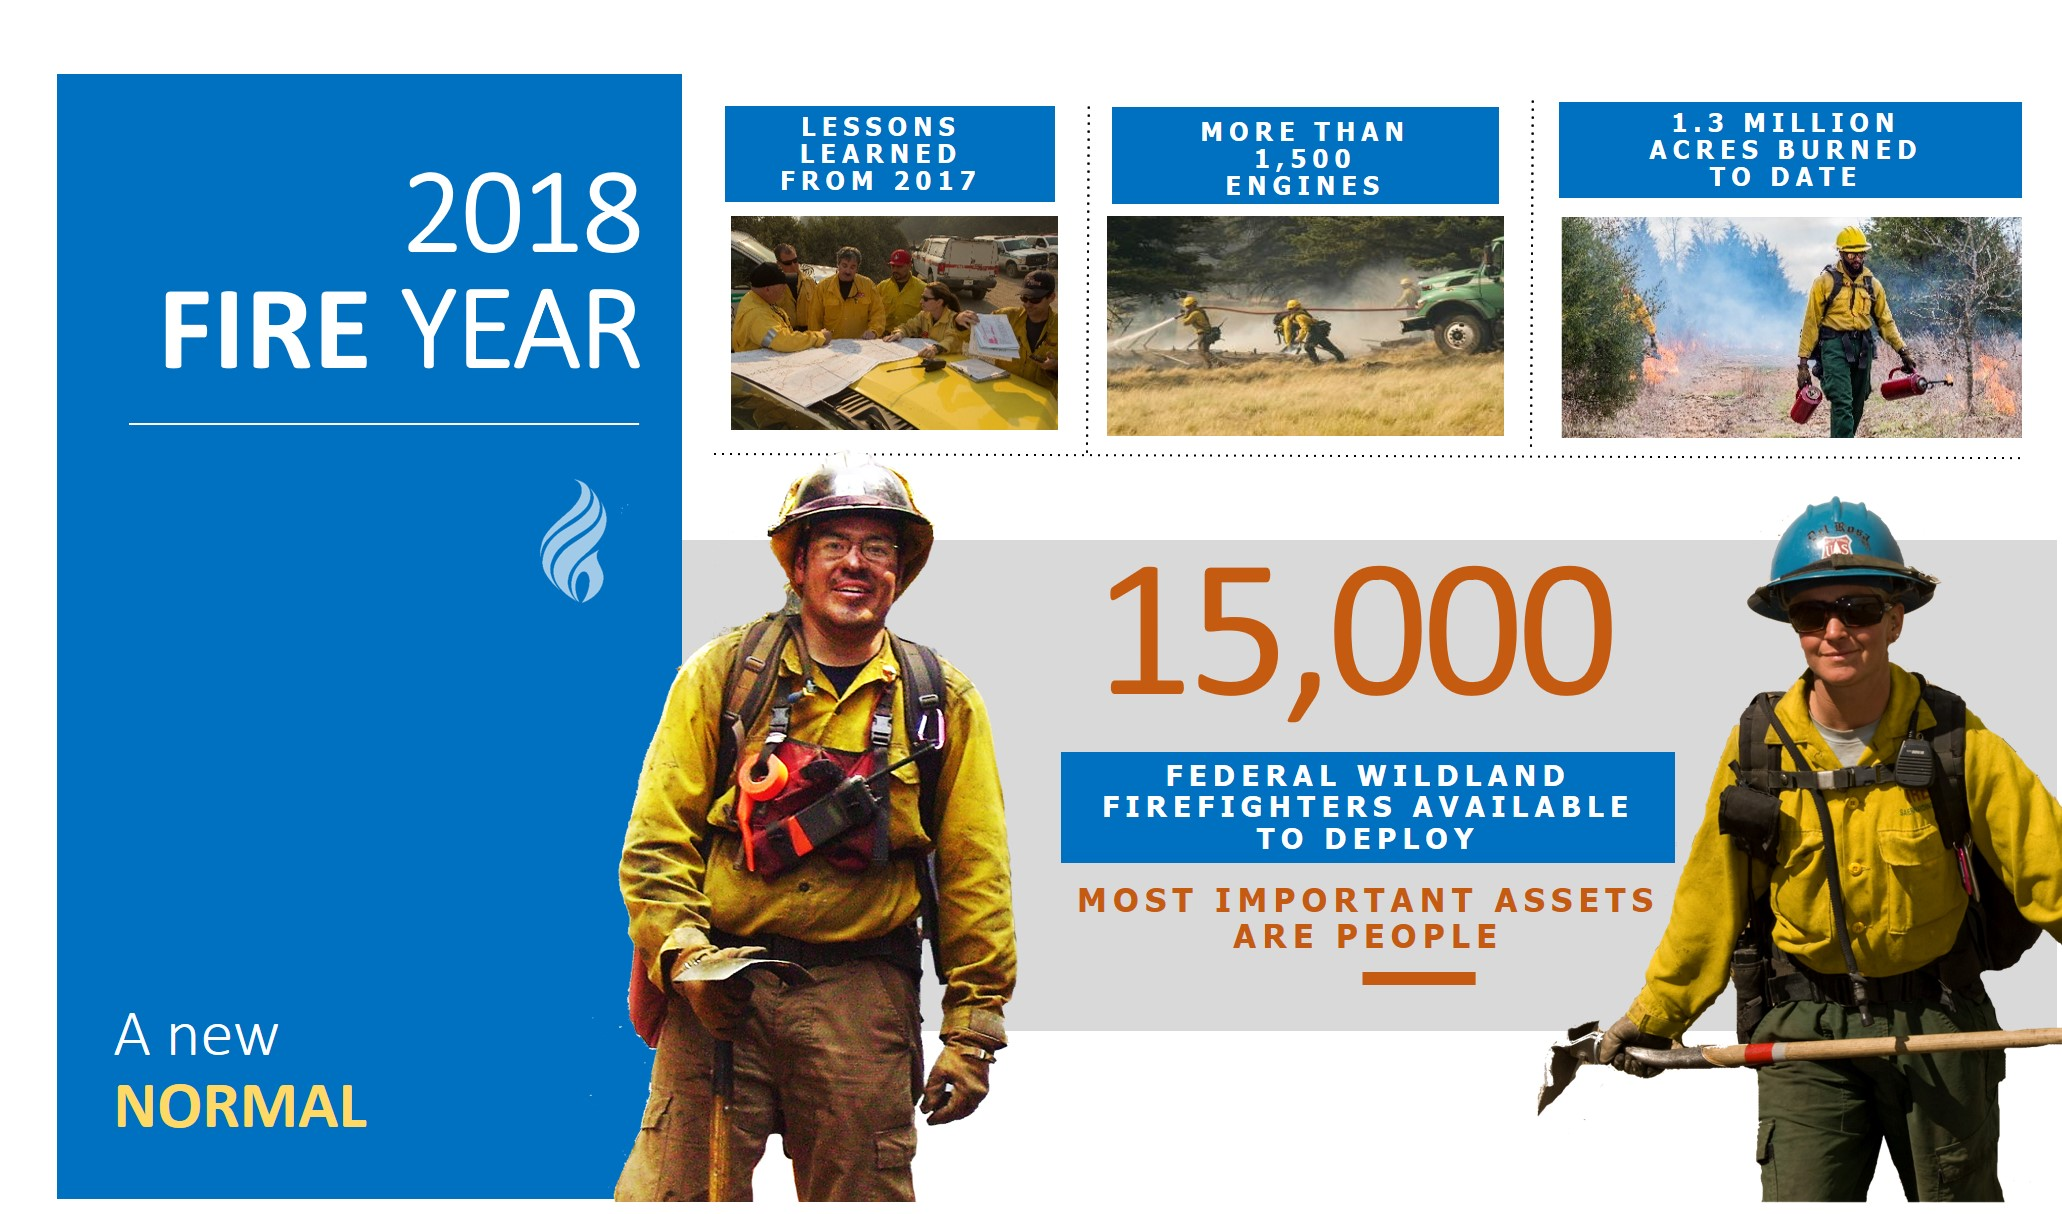 Slide: 2018 fire briefing slide depicting numbers of assets, acres used in 2017 firefighting.